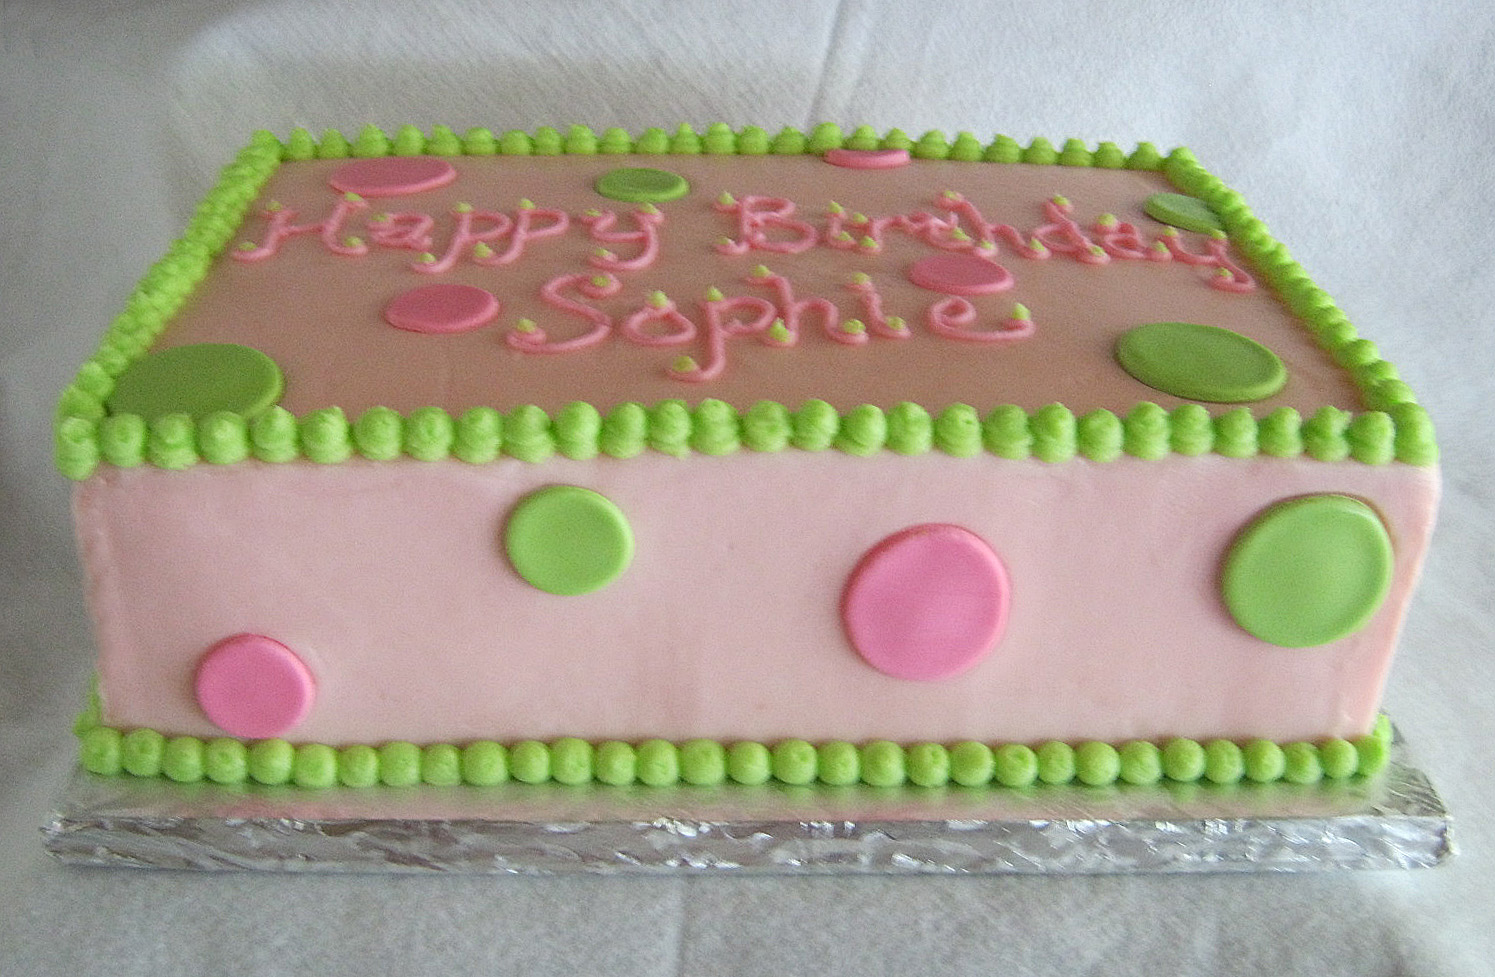 Baby Shower Sheet Cake | This As One Cake That Was The Little Girl S Smash  Cake That She Got To ... | Cakes, Cupcakes, Etc. | Pinterest | Baby Shower  Sheet ...